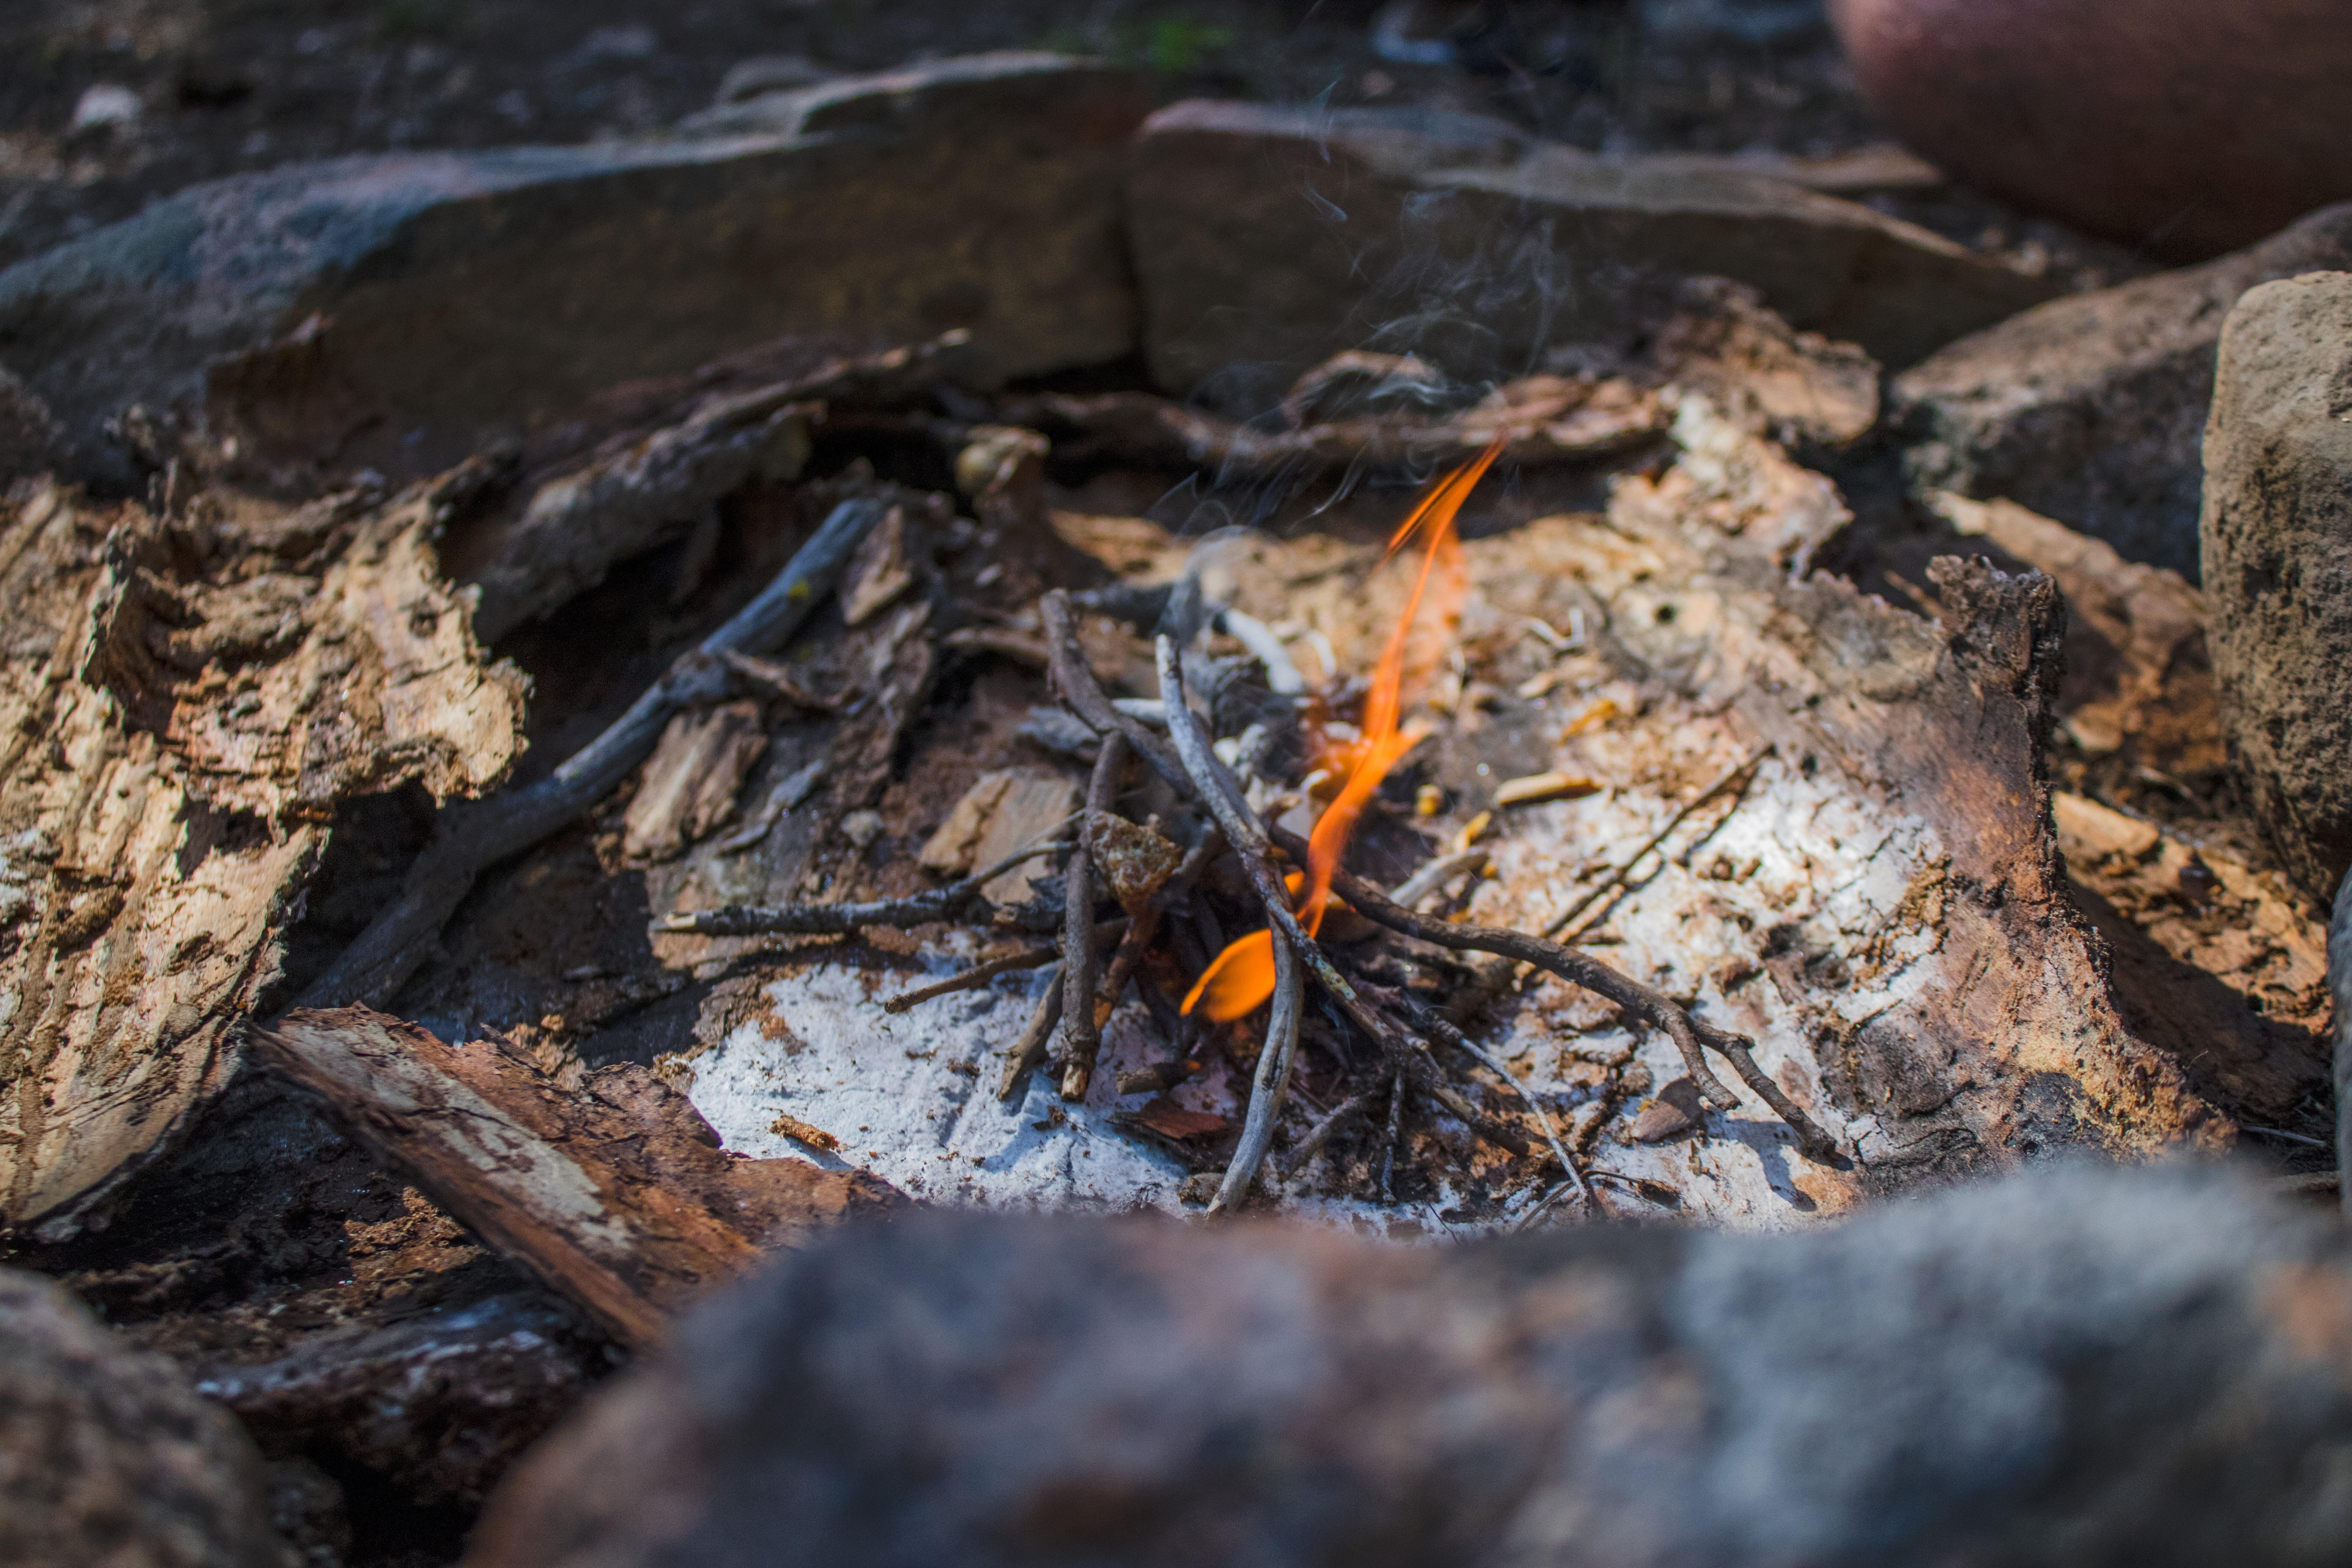 A pile of twigs burning with ash underneath in a pit surrounded by stones and bark.